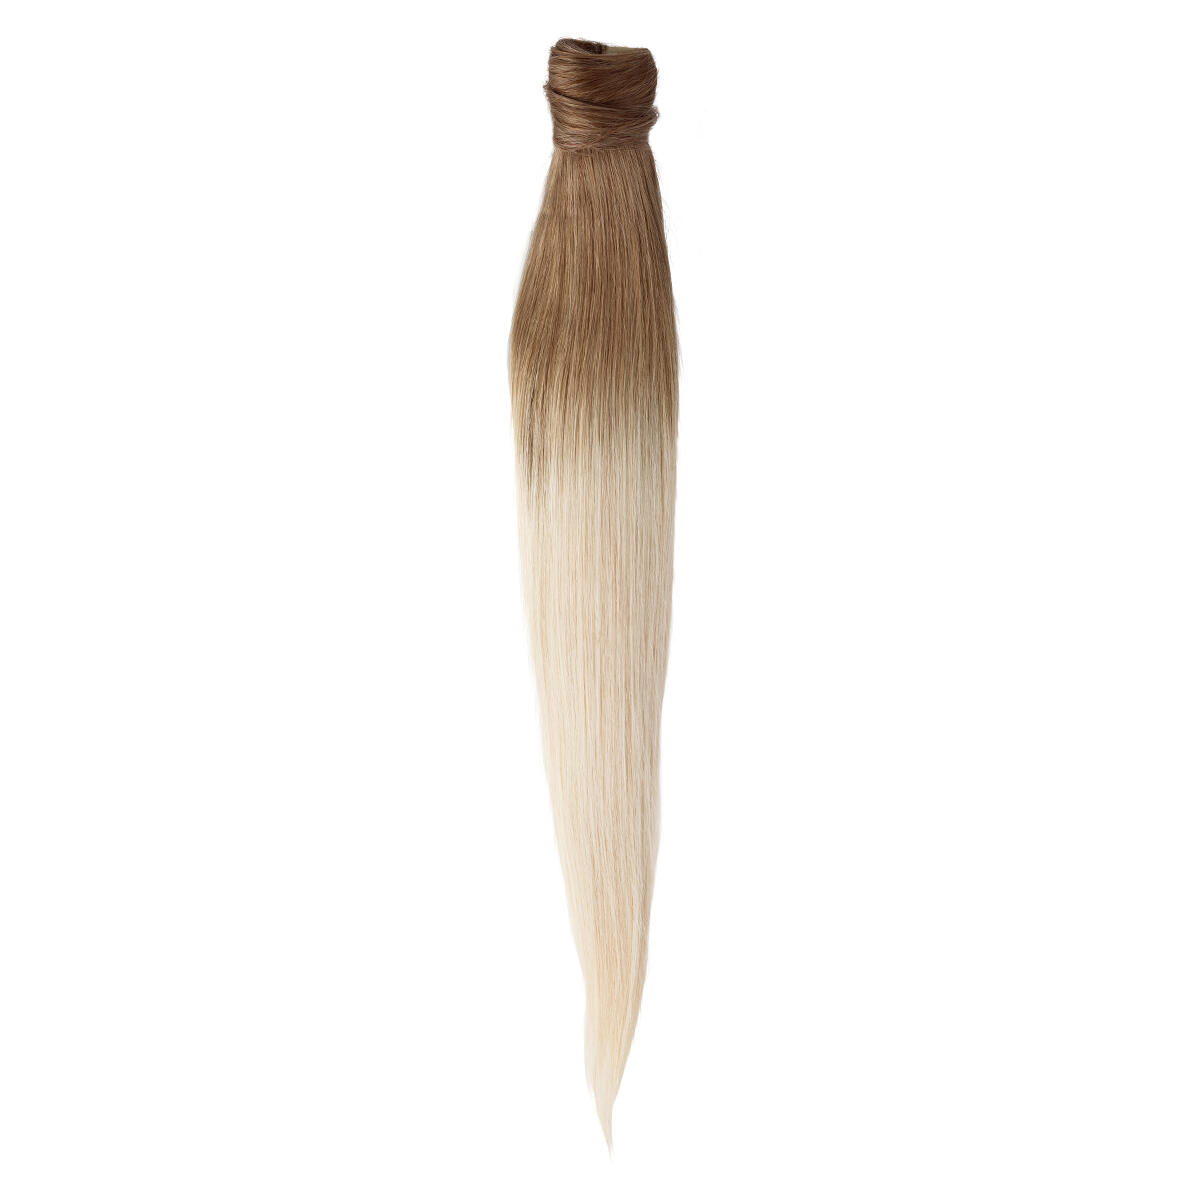 Clip-in Ponytail Original O7.3/10.8 Cendre Ash Blond Ombre 40 cm